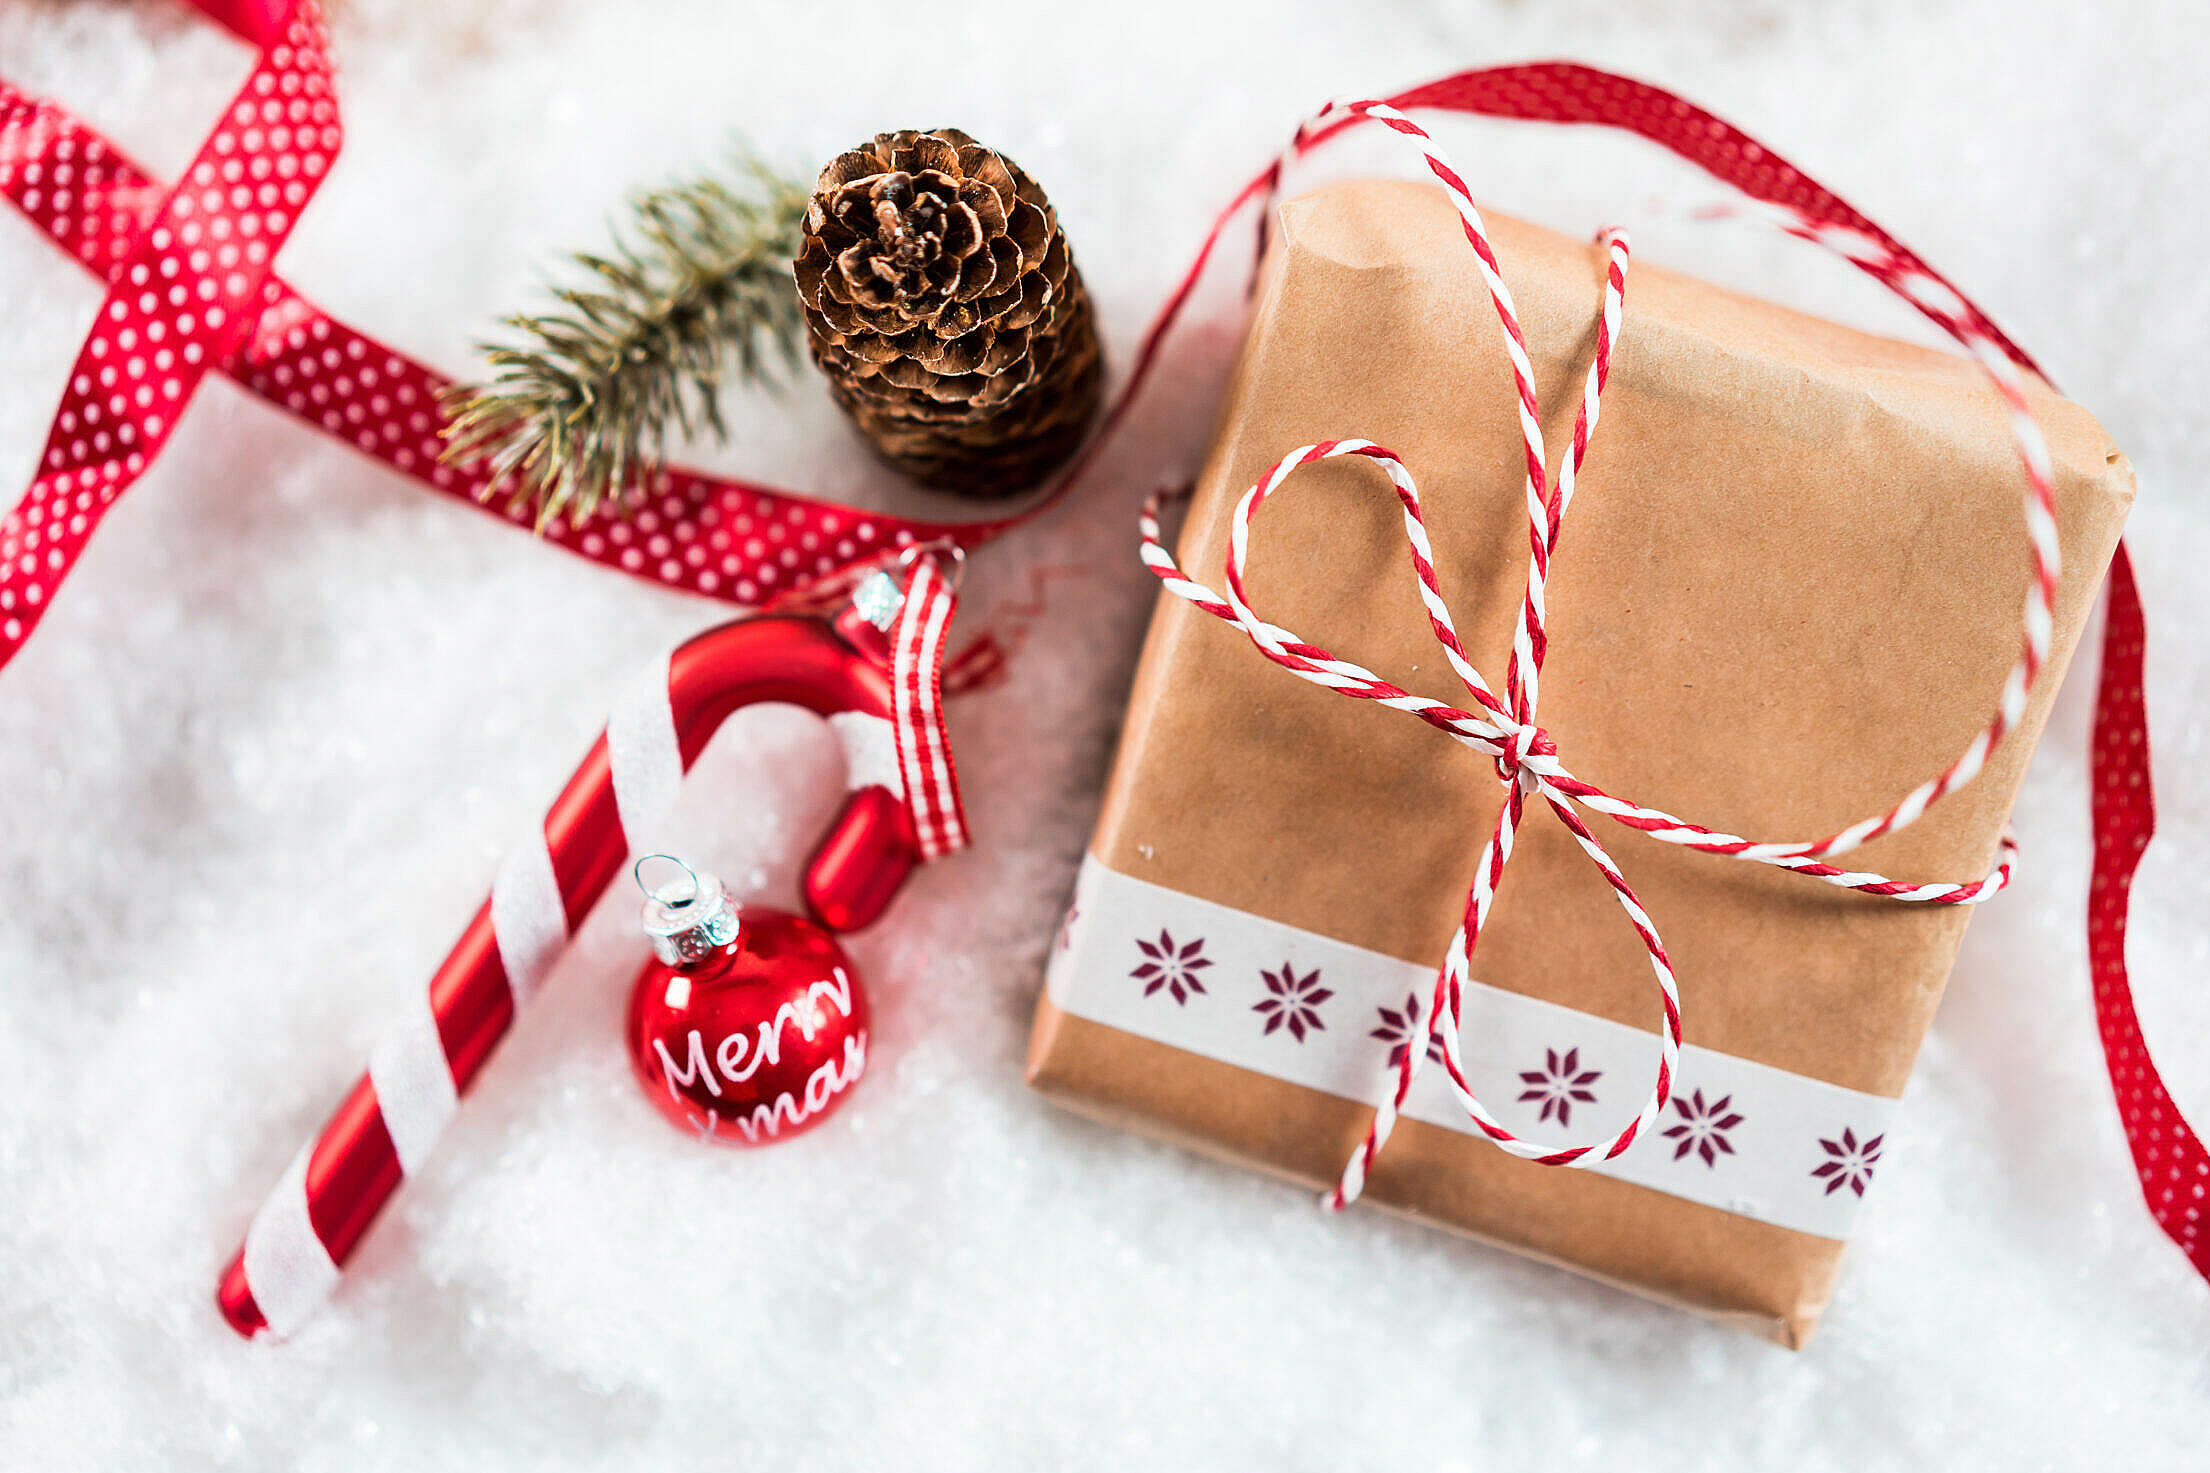 Christmas Present and Decorations in Snow Free Stock Photo